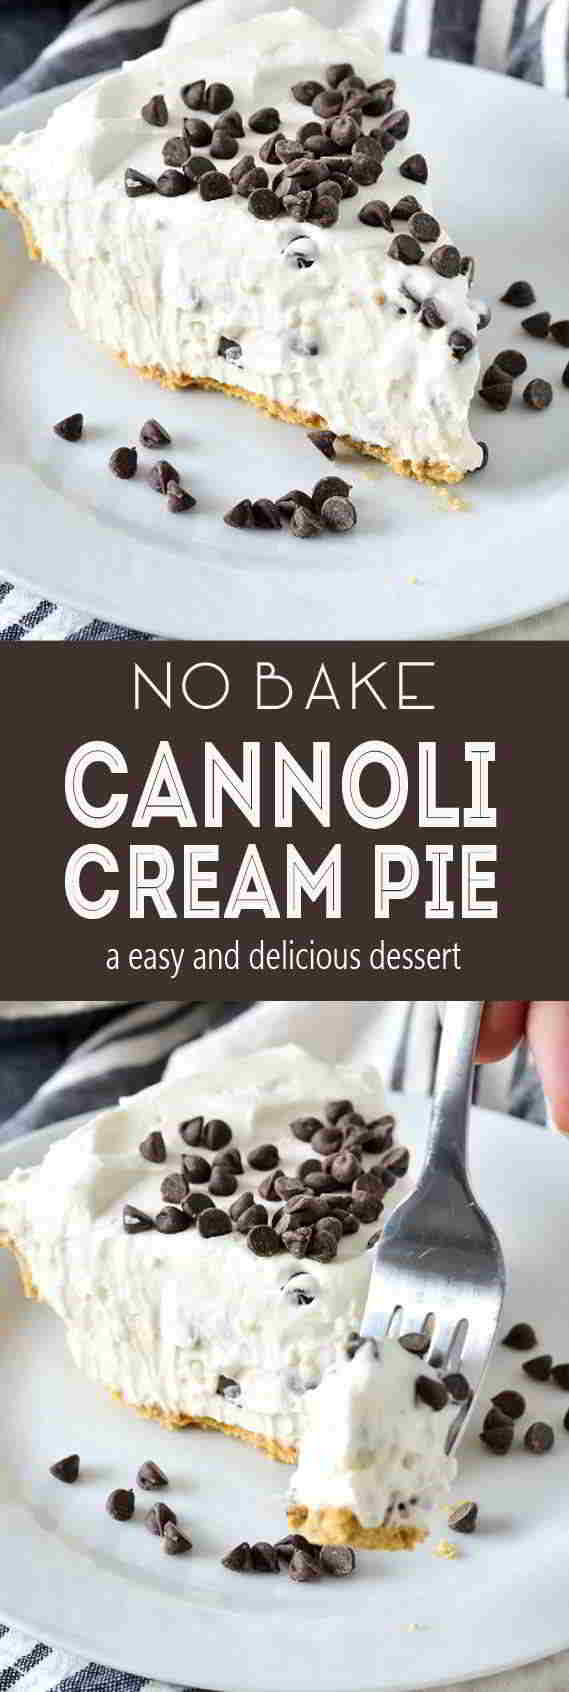 No-bake-Cannoli-Cream-Pie-Recipe